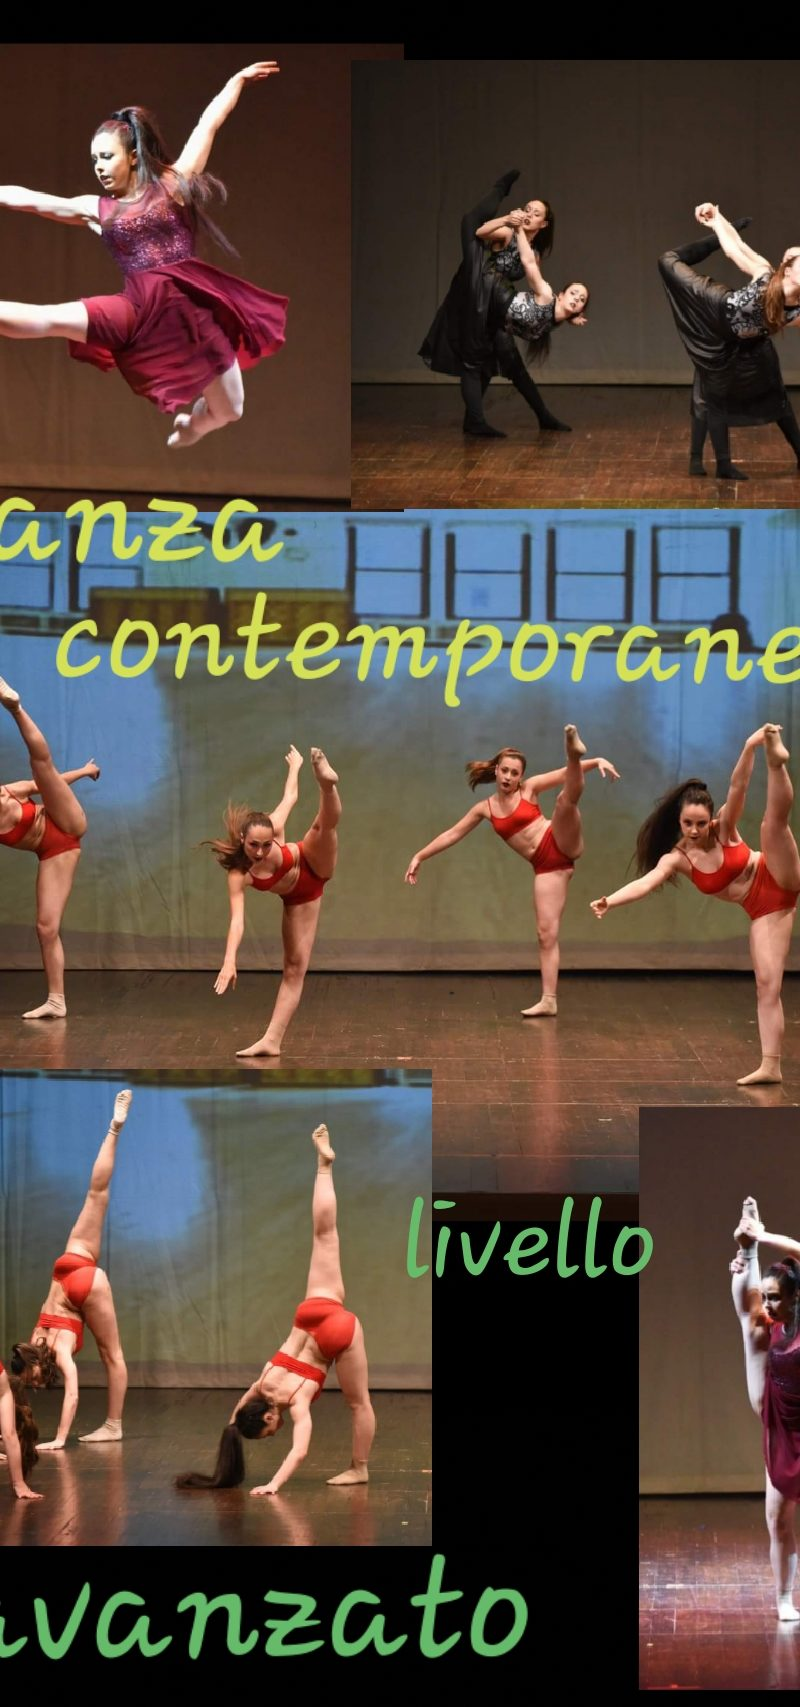 Contemporaneo avanzato